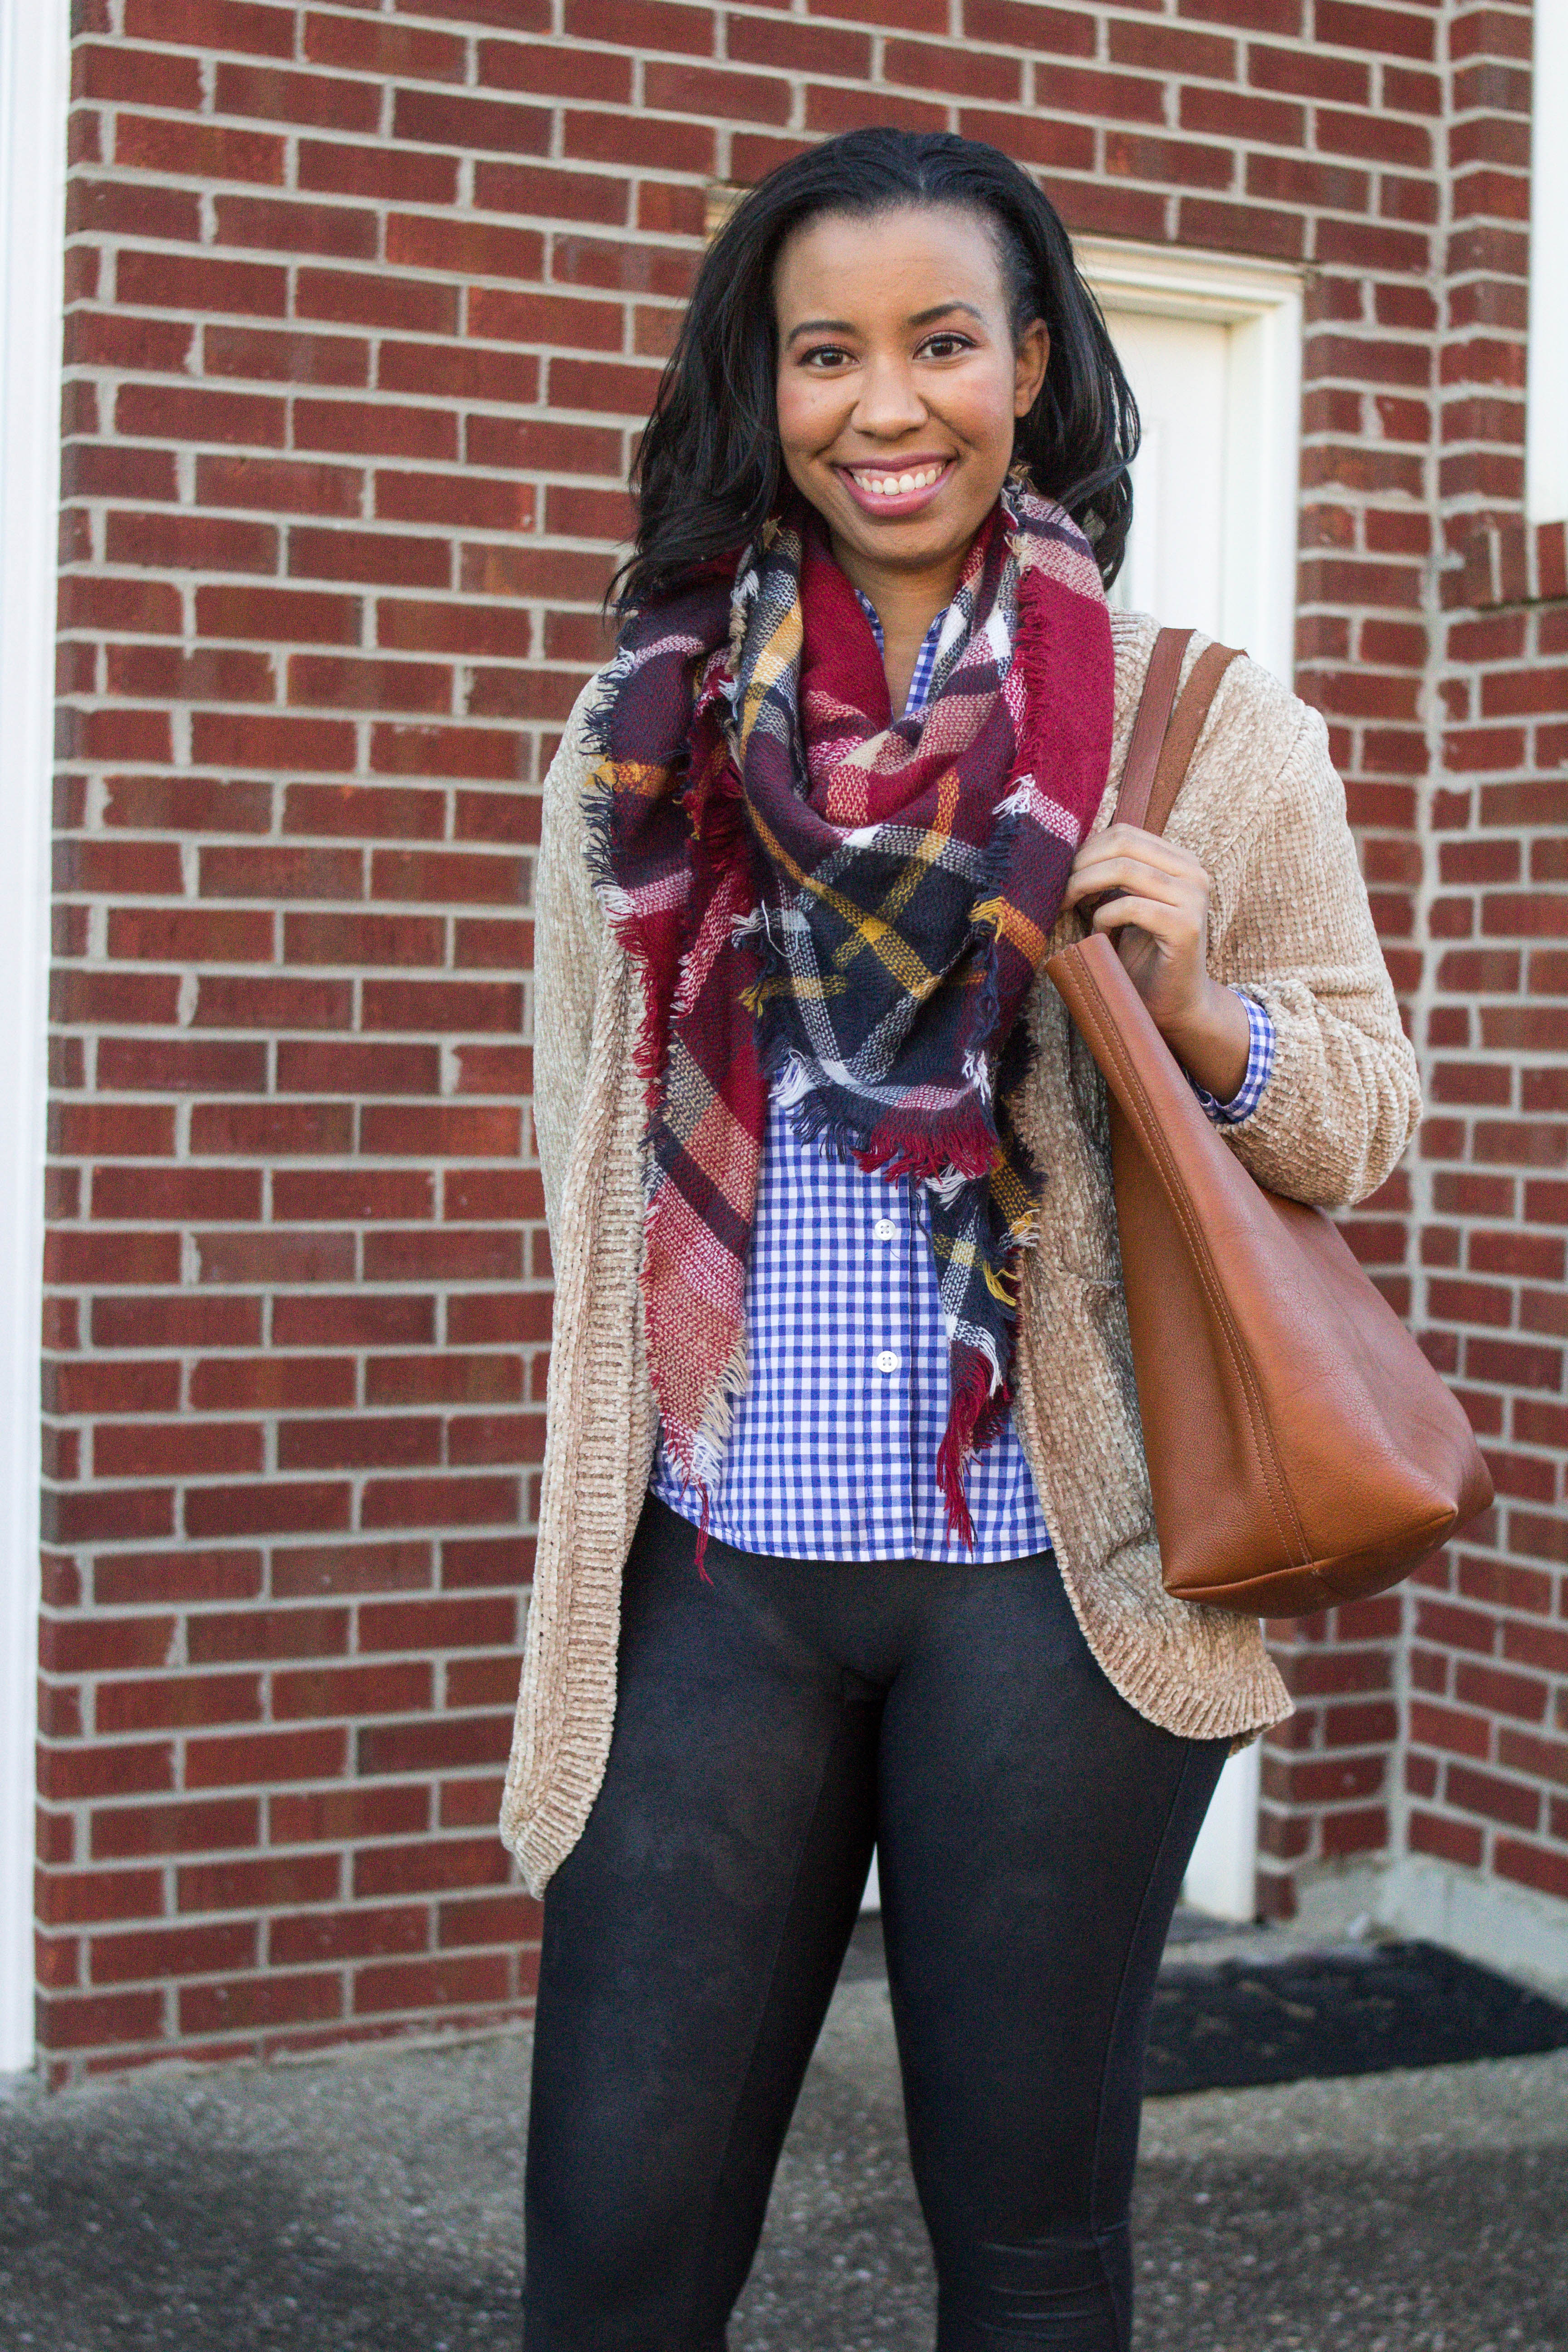 Popular style blogger, What Nicole Wore, shows how to take ten wardrobe staples and create twenty fall outfits with a fall capsule wardrobe. // blanket scarf outfit inspiration, burgundy scarf outfit ideas, black leggings outfits, chenille cardigan, tan cardigan outfit inspiration